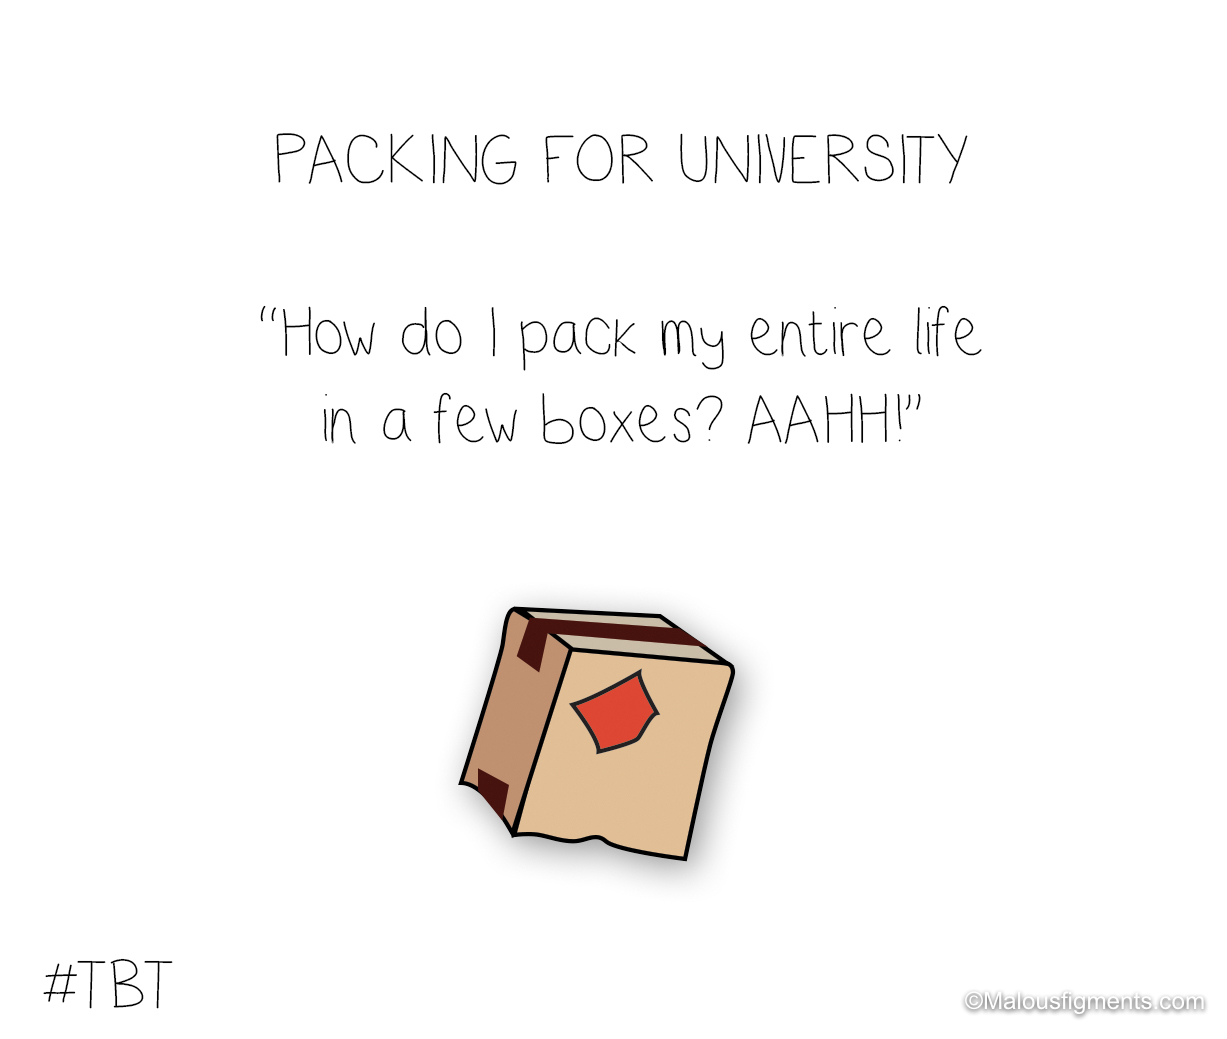 Packing for university